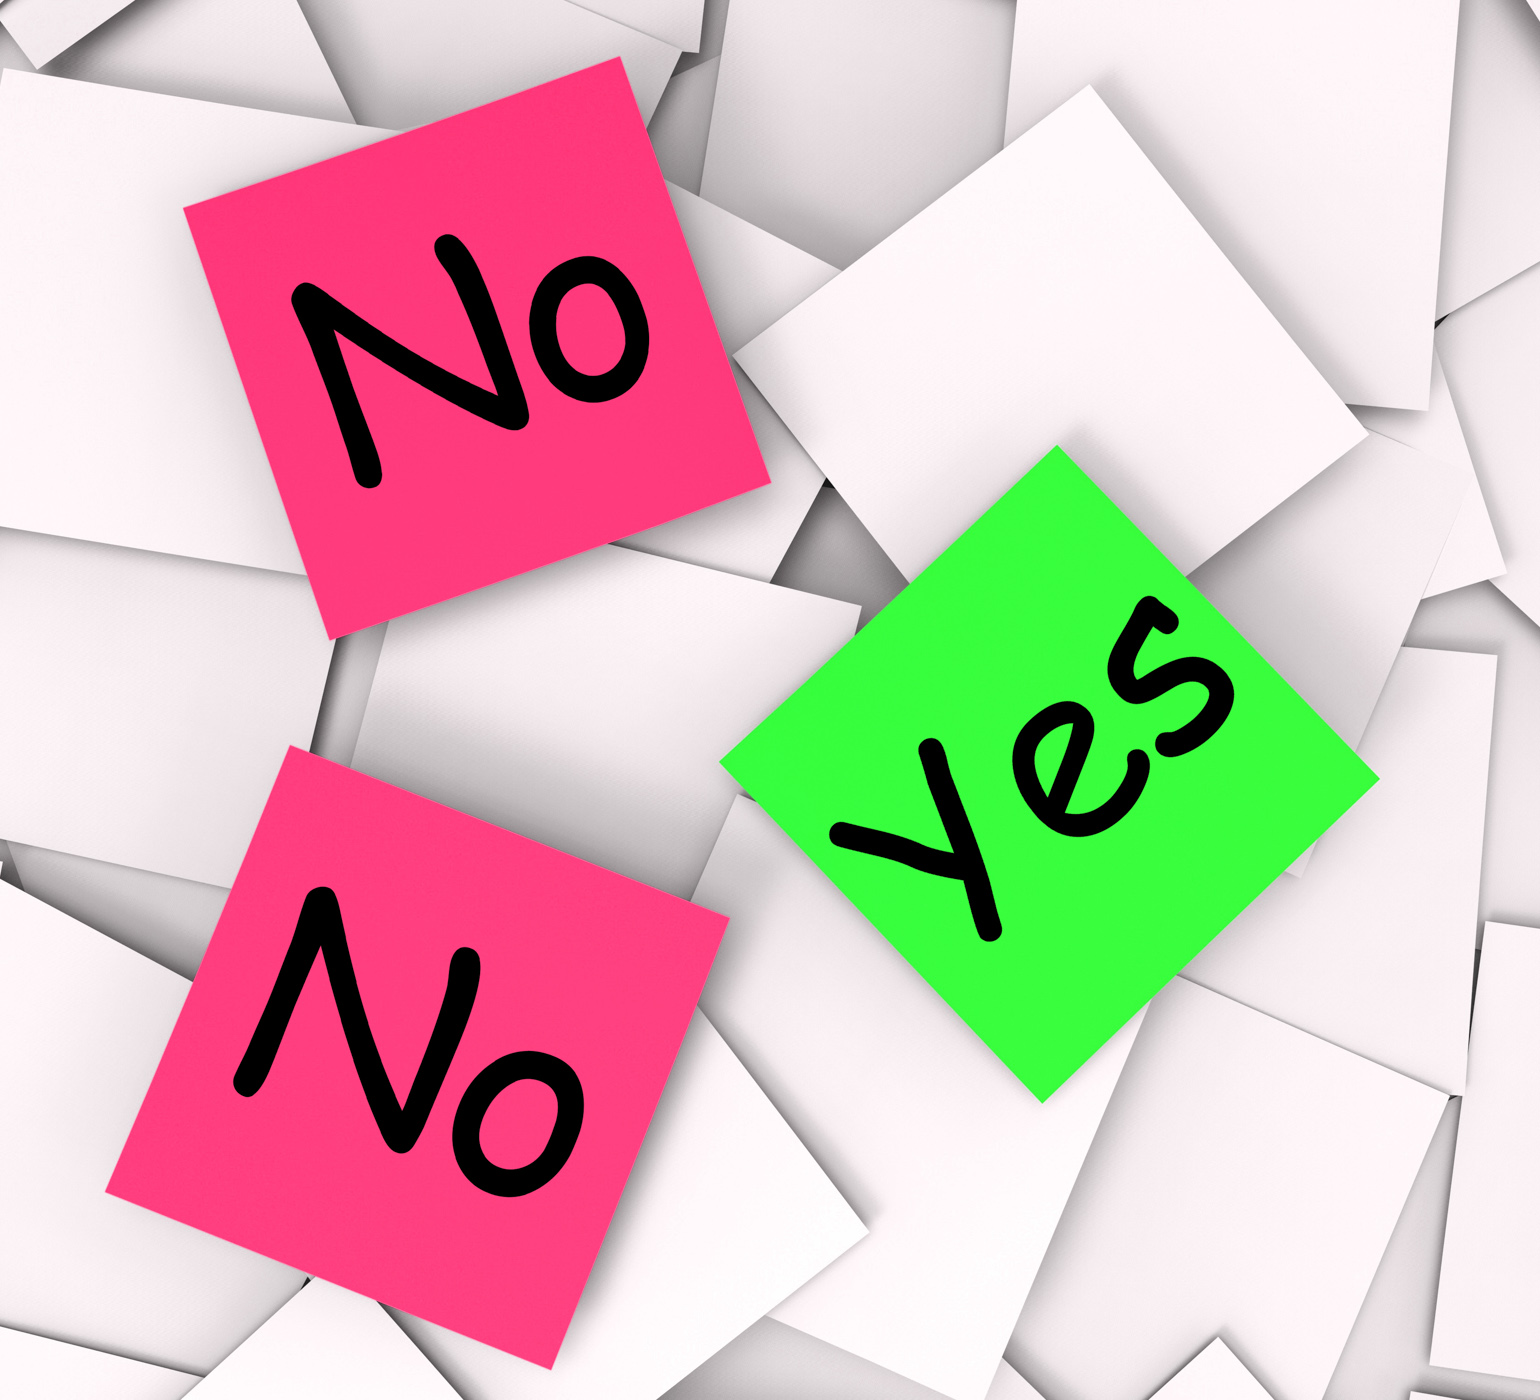 Yes No Post-It Notes Mean Answers Affirmative Or Negative, No, Negative, Not, Fine, HQ Photo